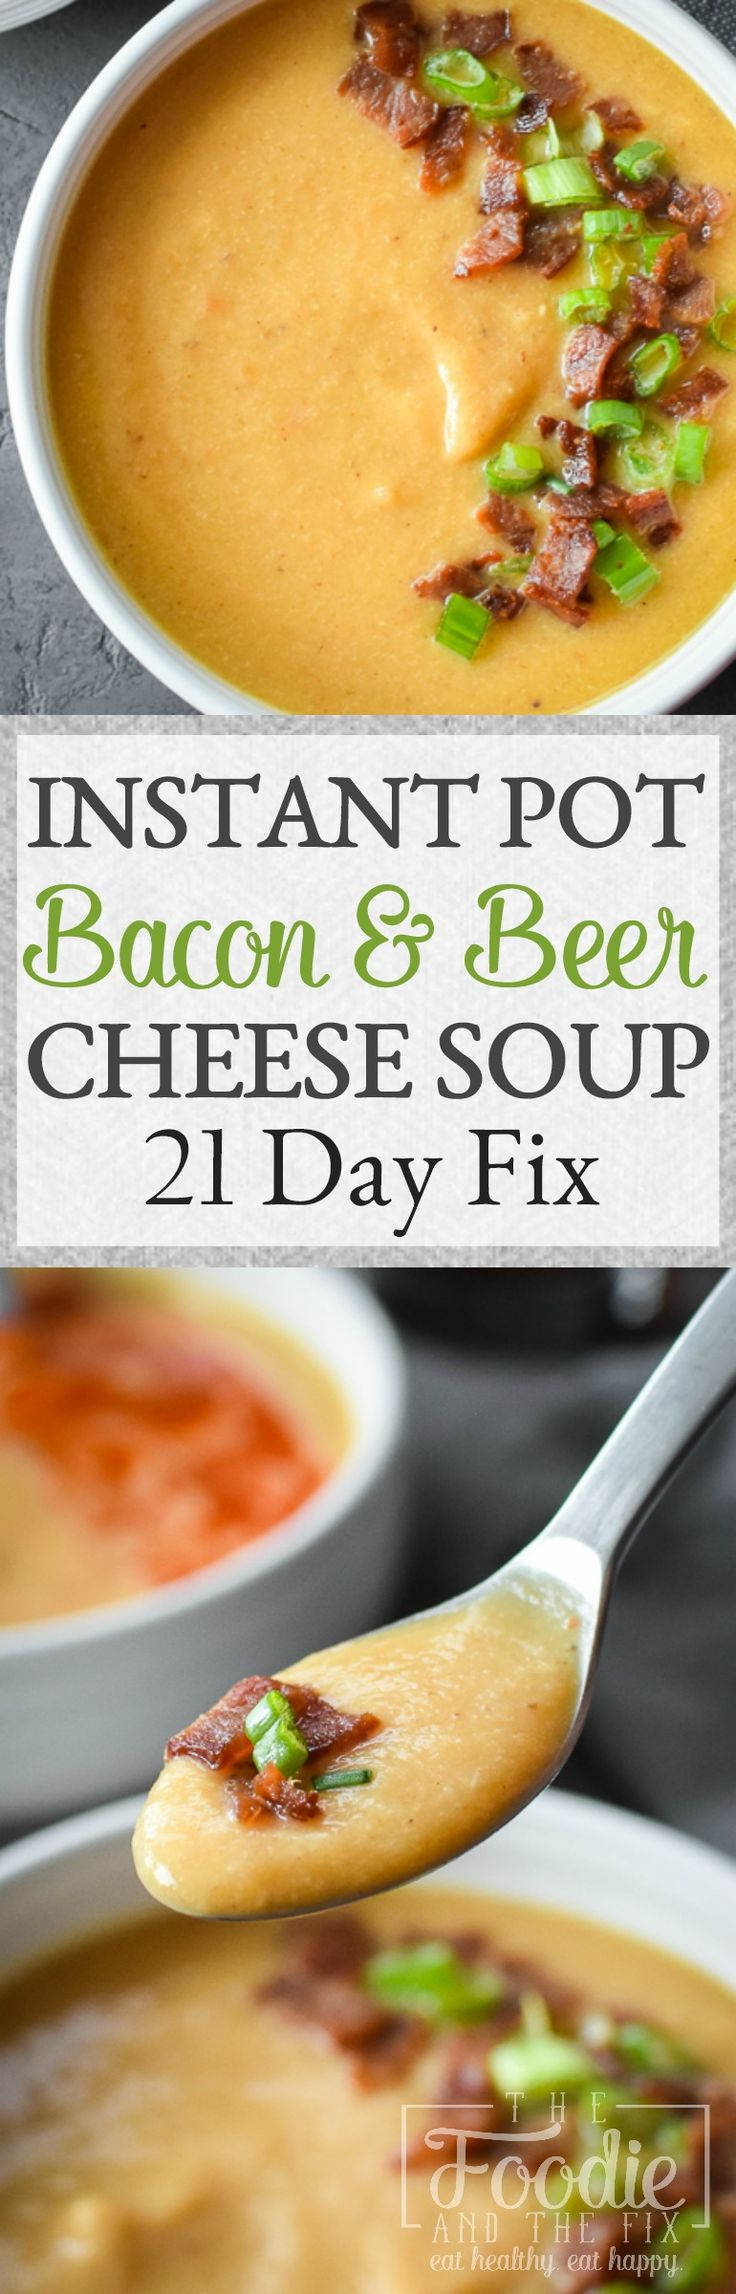 21 Day Fix approved Instant Pot Bacon and Beer Cheese Cauliflower Soup 2G 1/2R 1/2B 1/2tsp